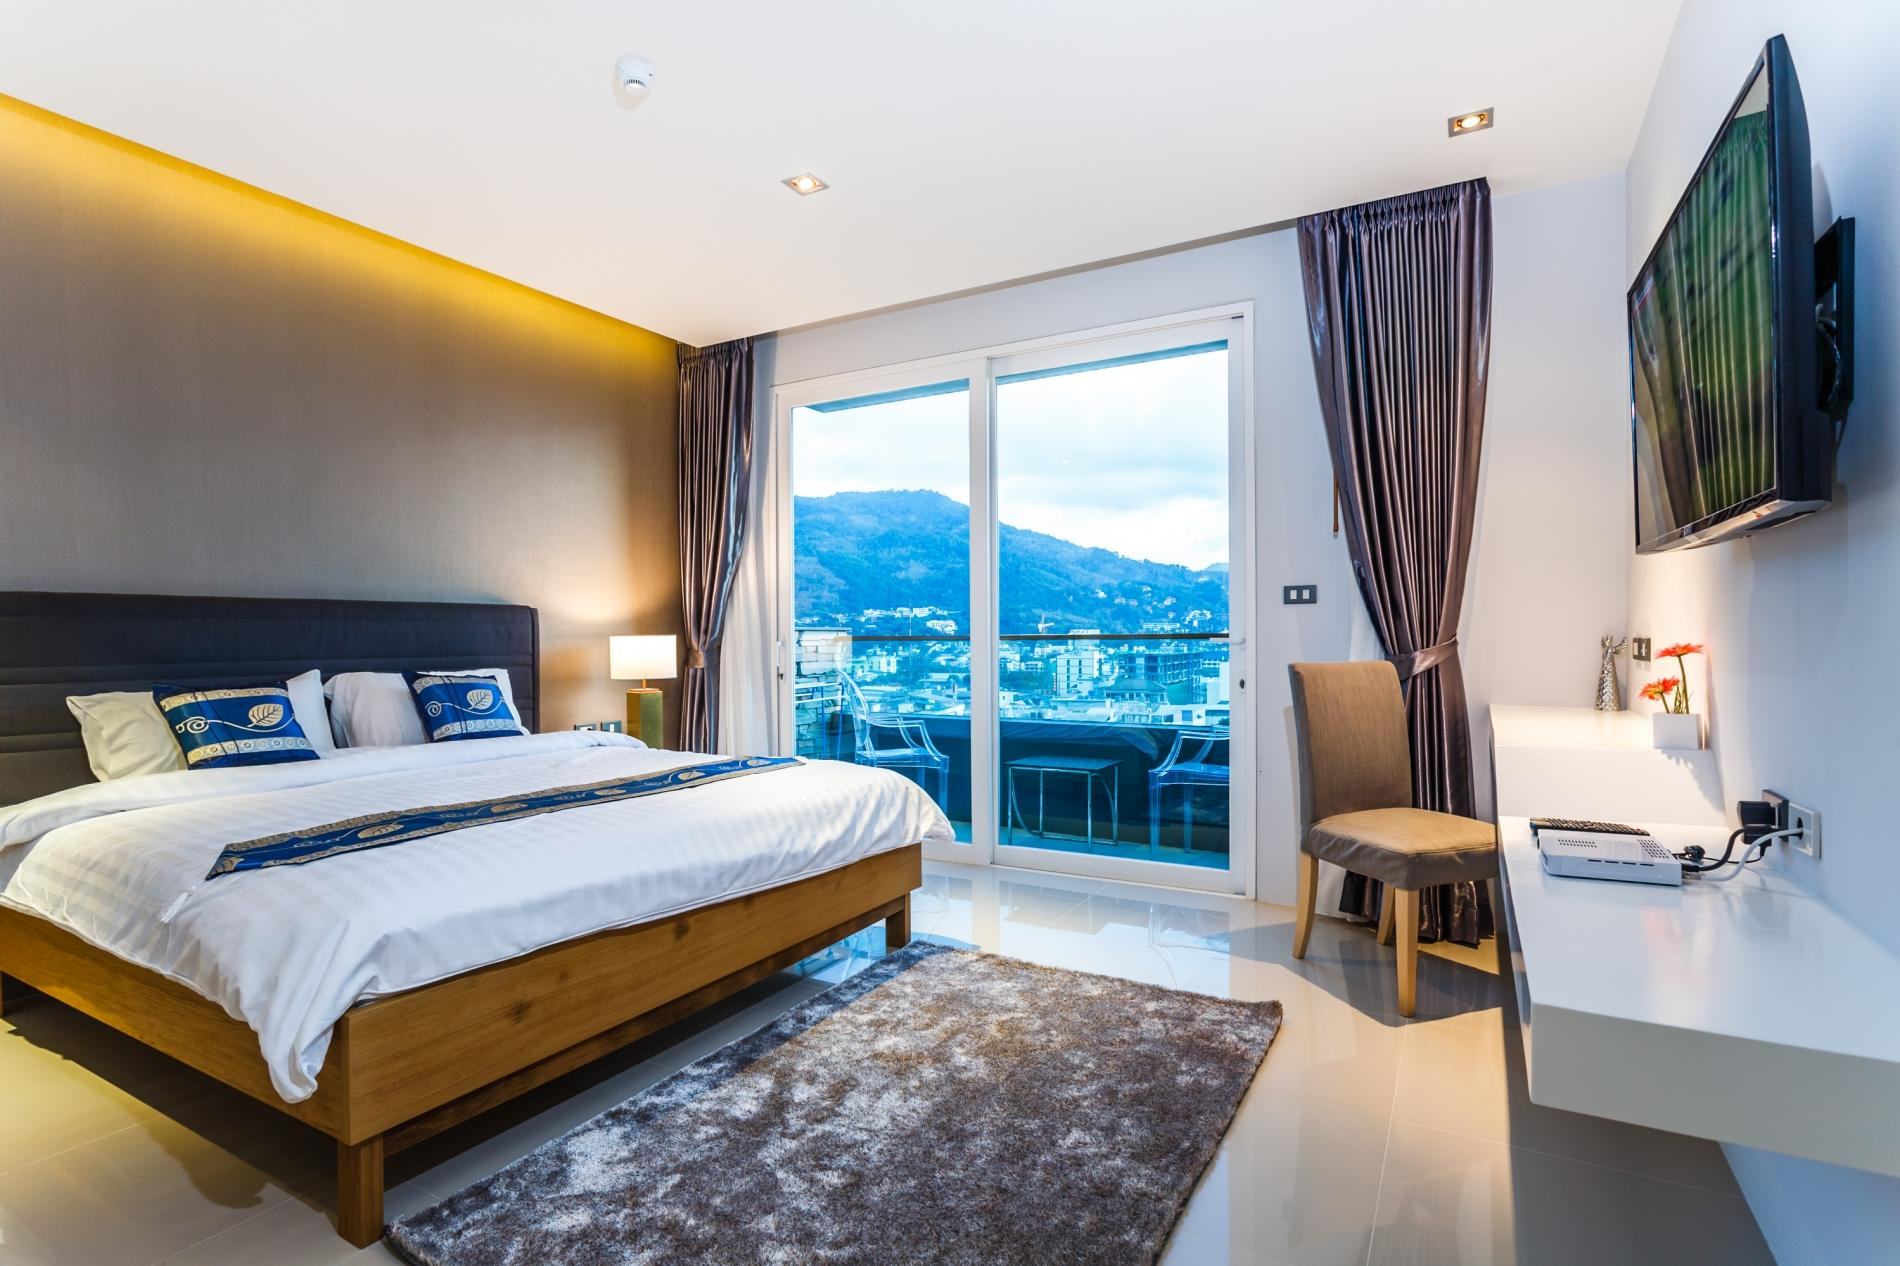 ET503 - Seaview studio in Patong with kitchen, washer, gym and pool photo 16193072